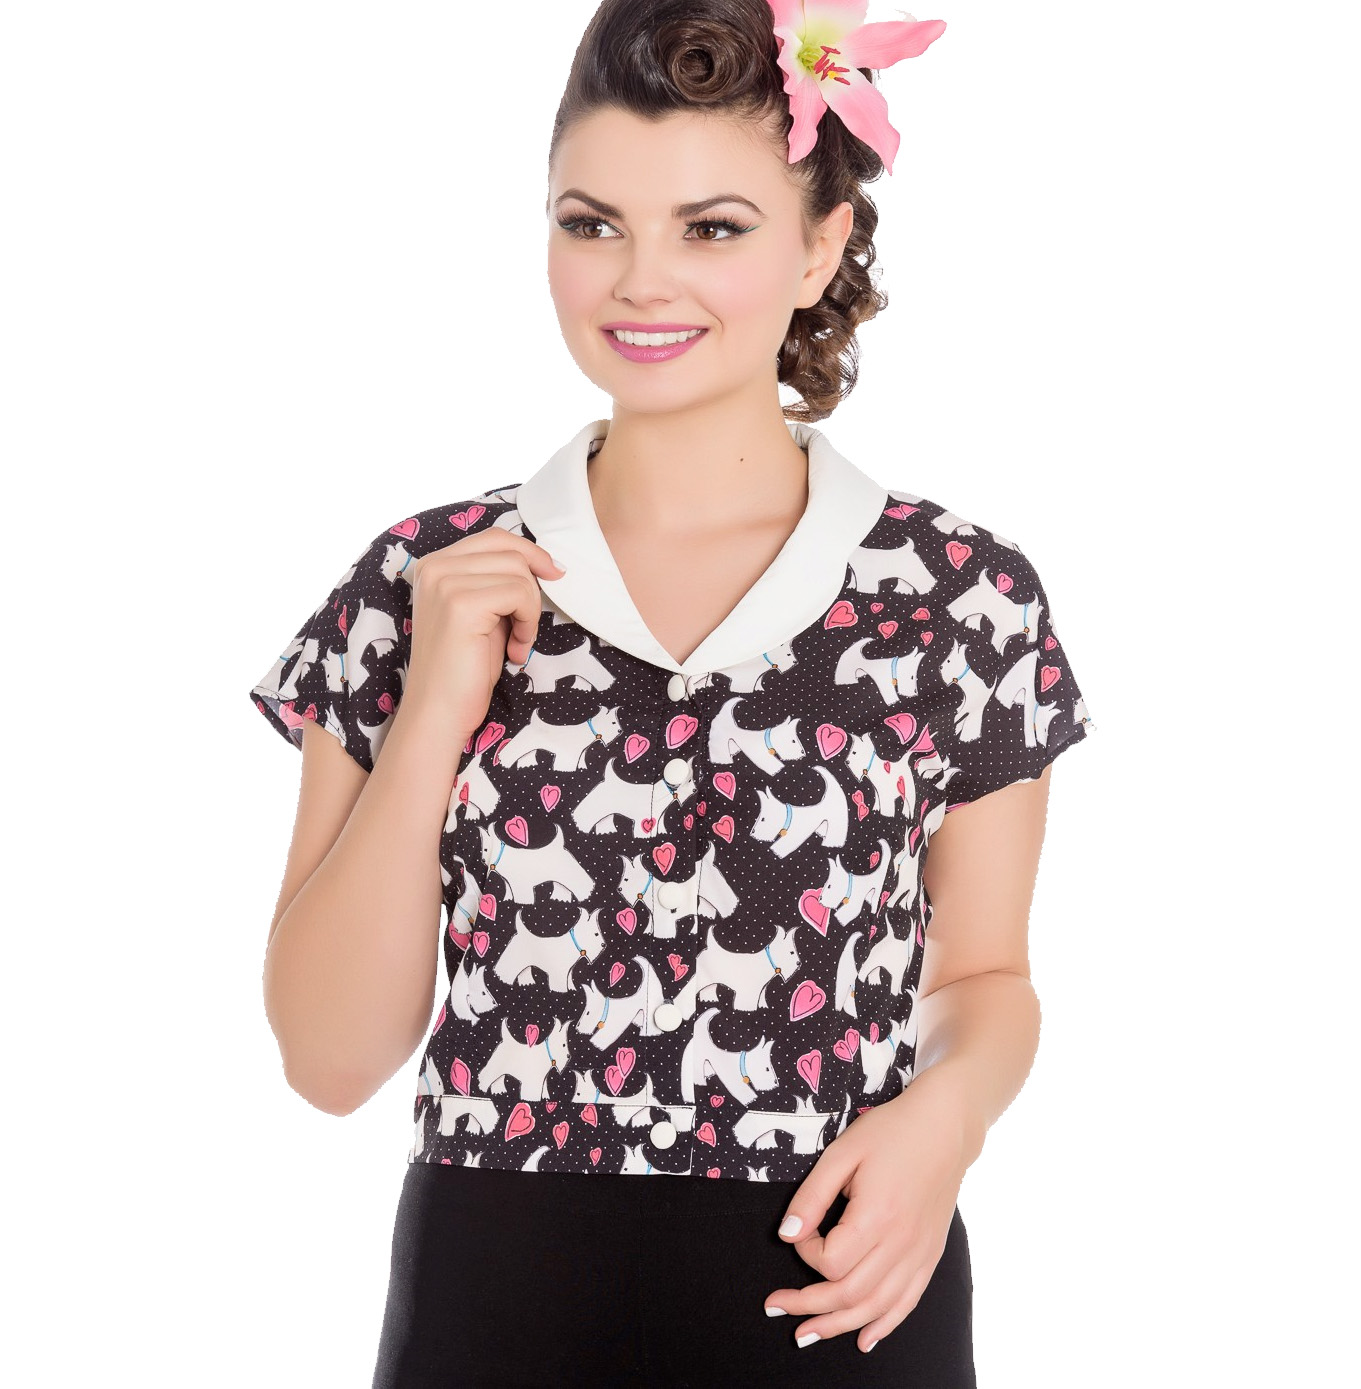 Hell-Bunny-50s-Retro-Top-Scottie-Dog-Heart-AGGY-Cropped-Blouse-Shirt-All-Sizes thumbnail 31